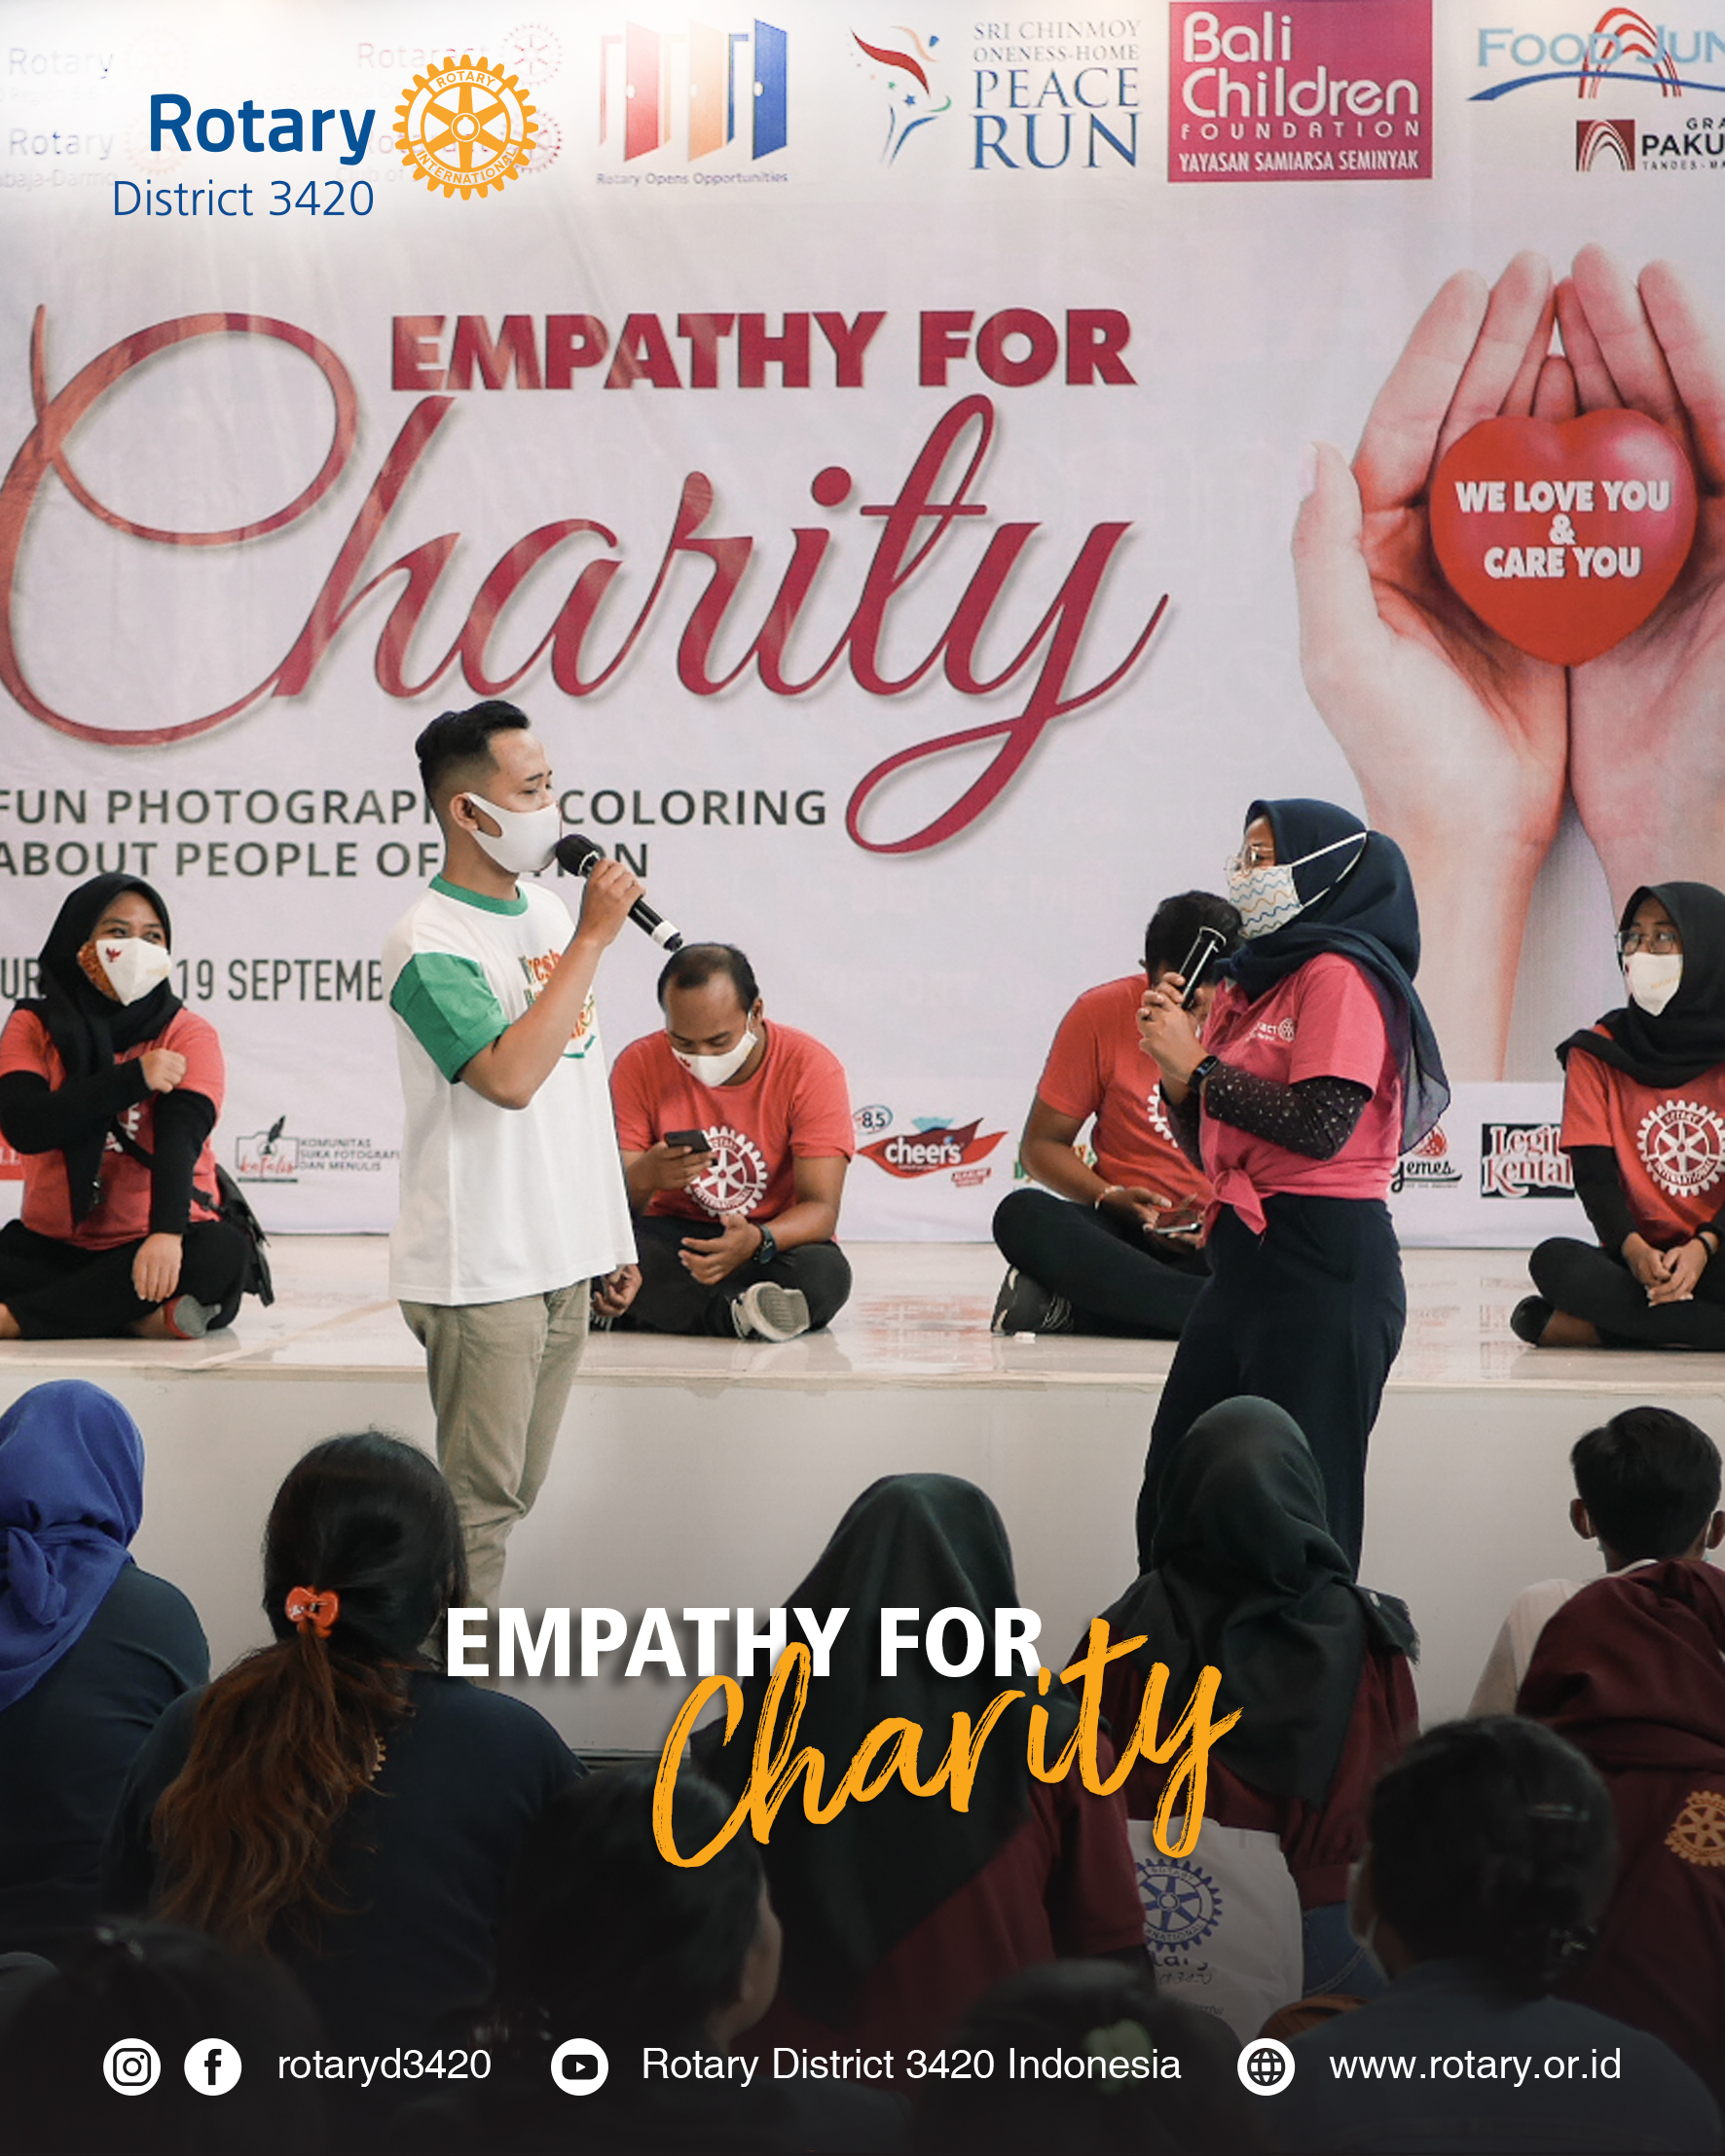 Empathy for Charity – Fun photography & Coloring about people of action